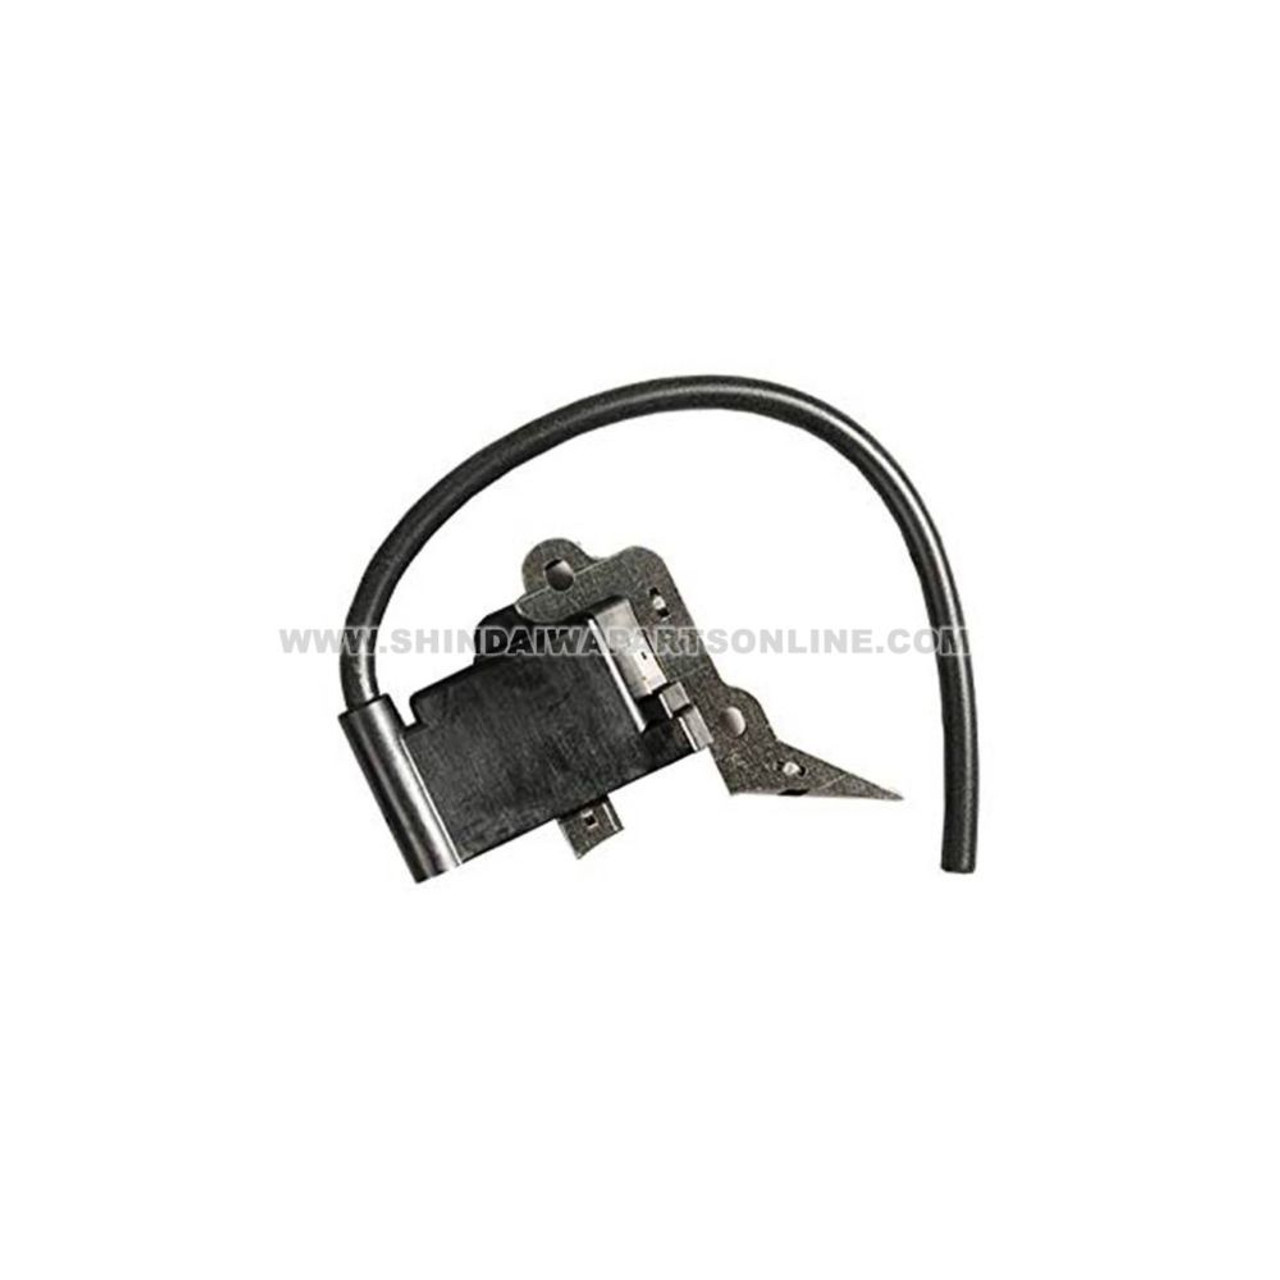 Shindaiwa T242 Ignition Coil A411000610 side view